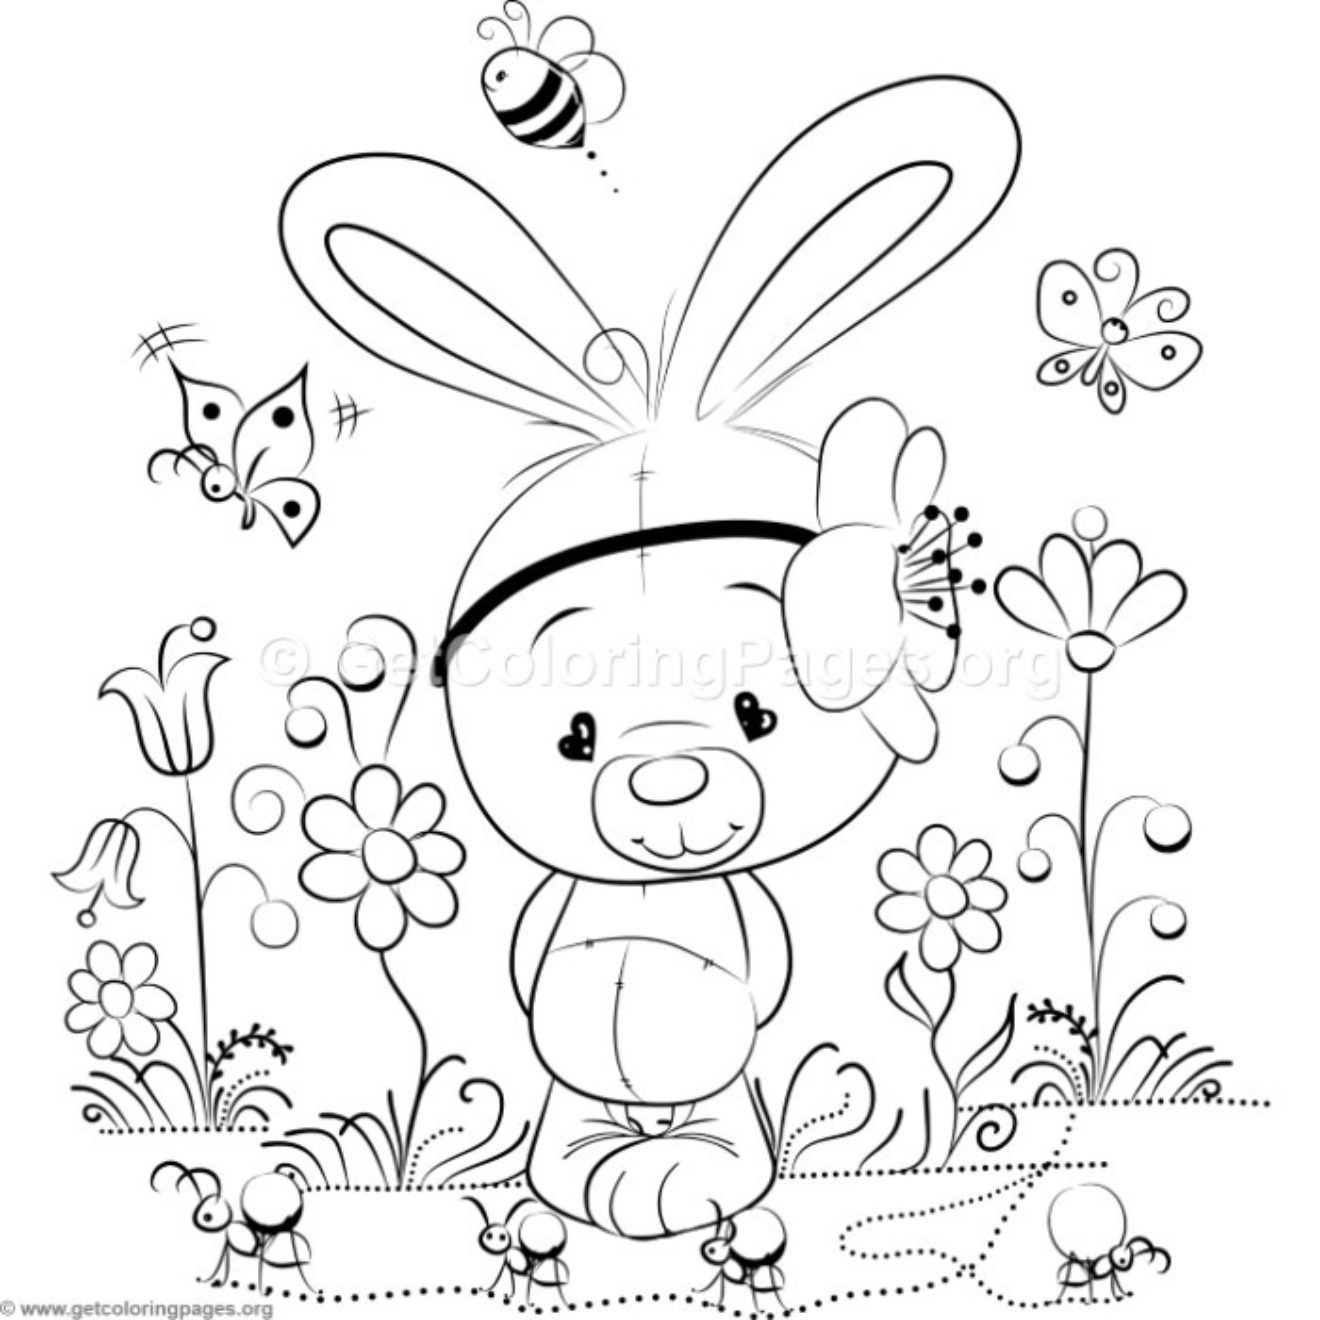 Cute Rabbit 8 Coloring Pages With Images